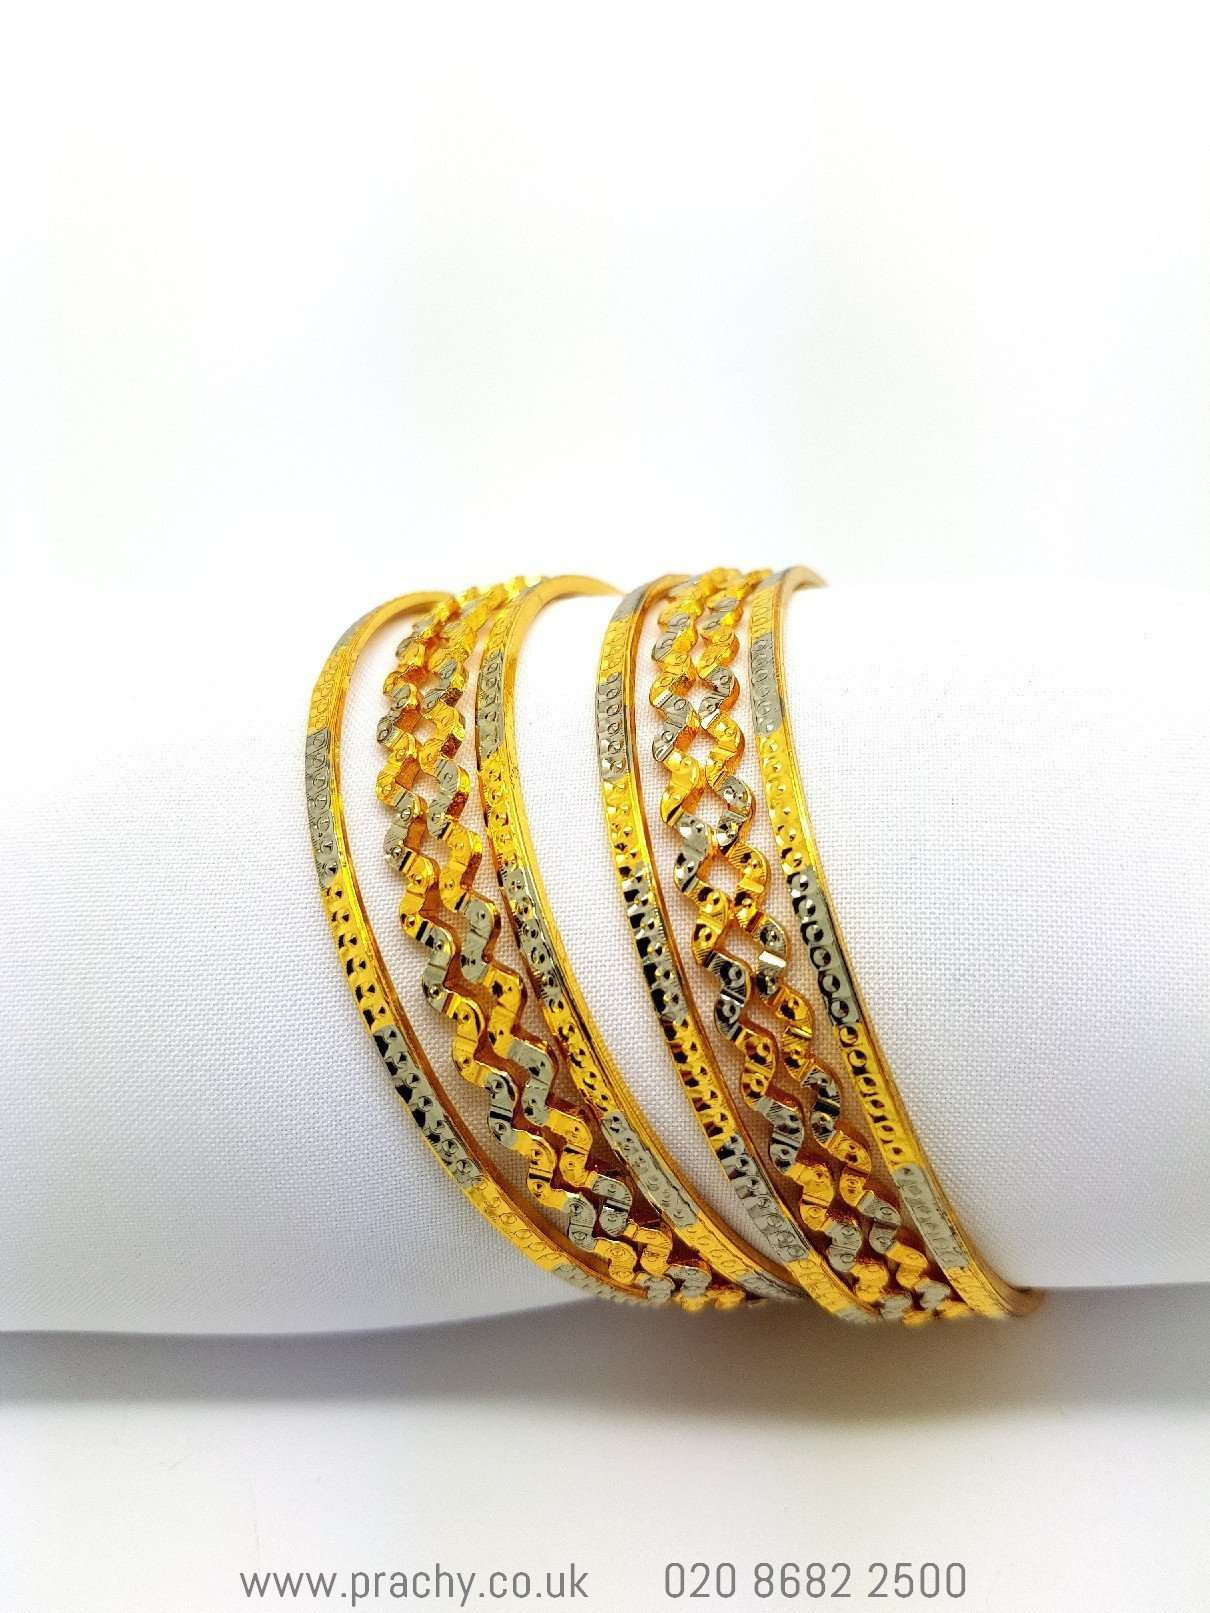 Prachy Creations : B953 Bangles - (set of 8) j 0916